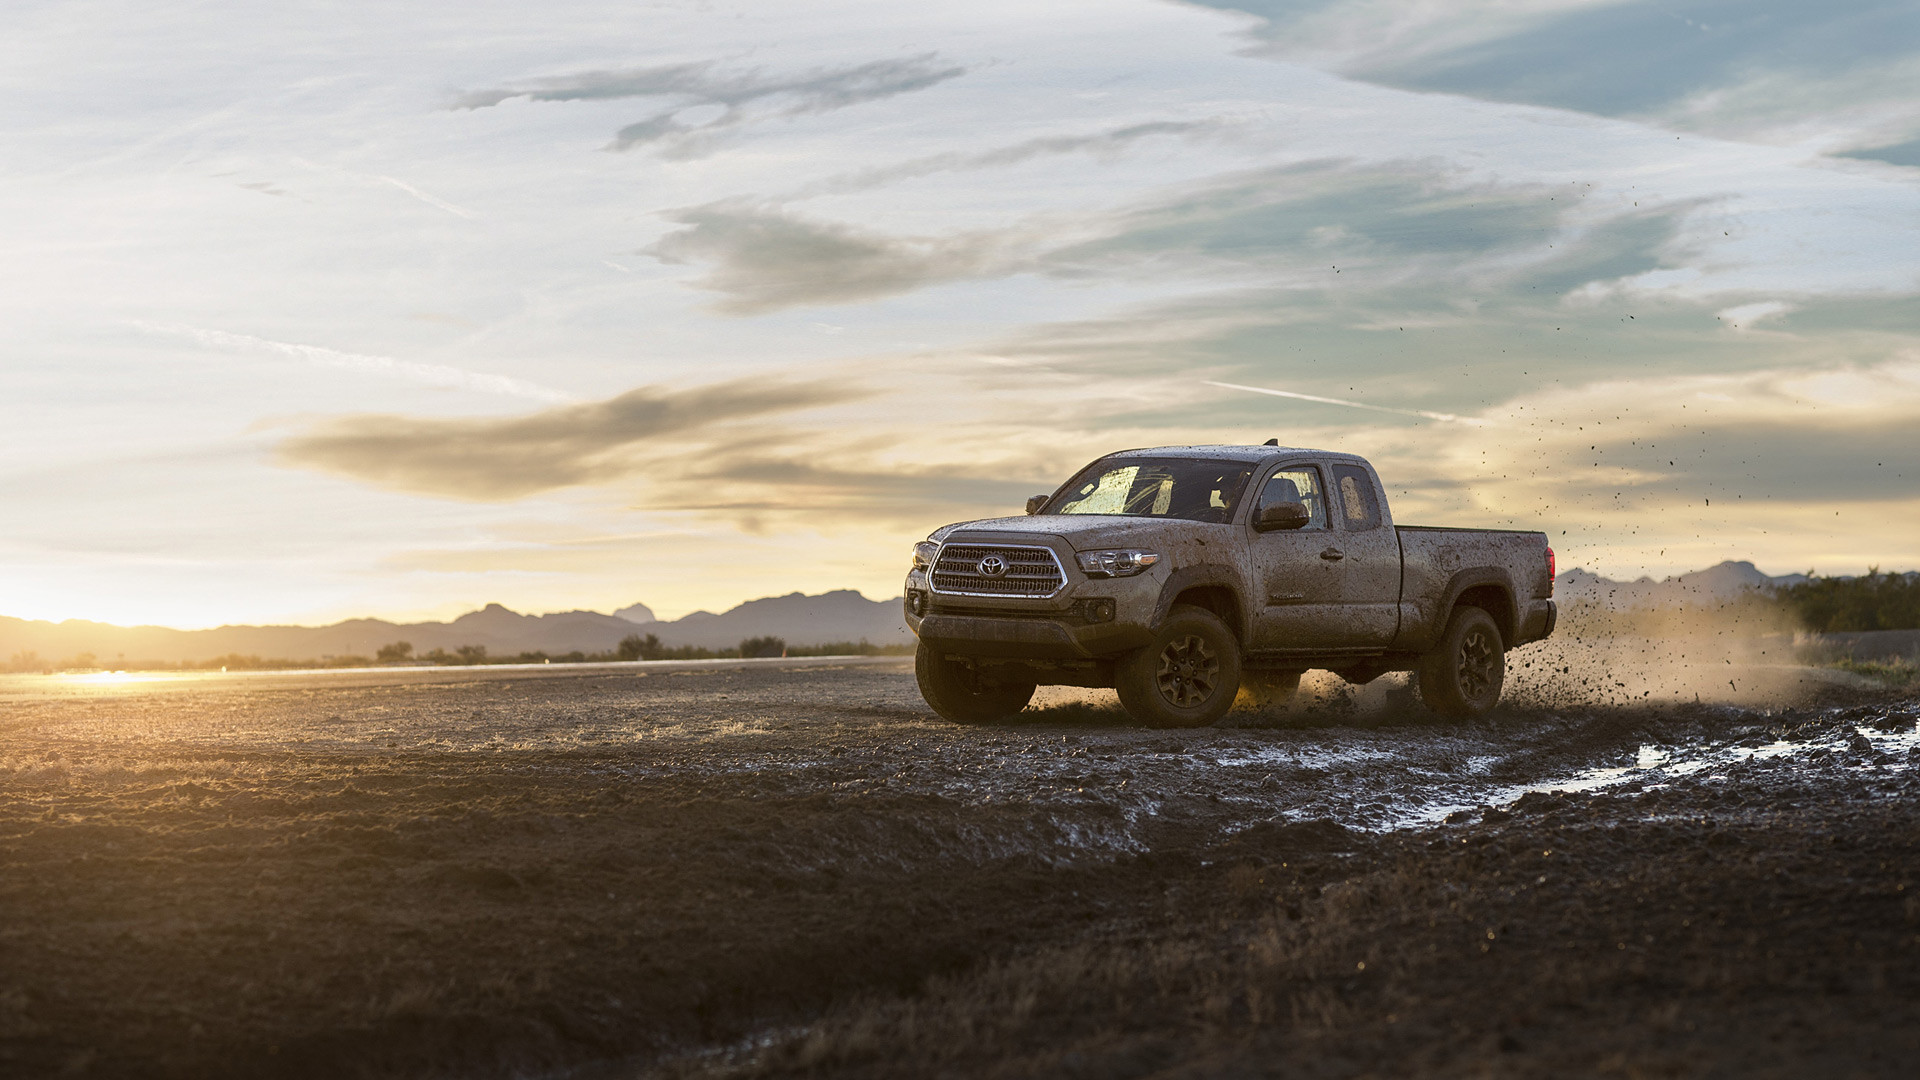 Res: 1920x1080, 2016 Toyota Tacoma TRD Off-Road picture